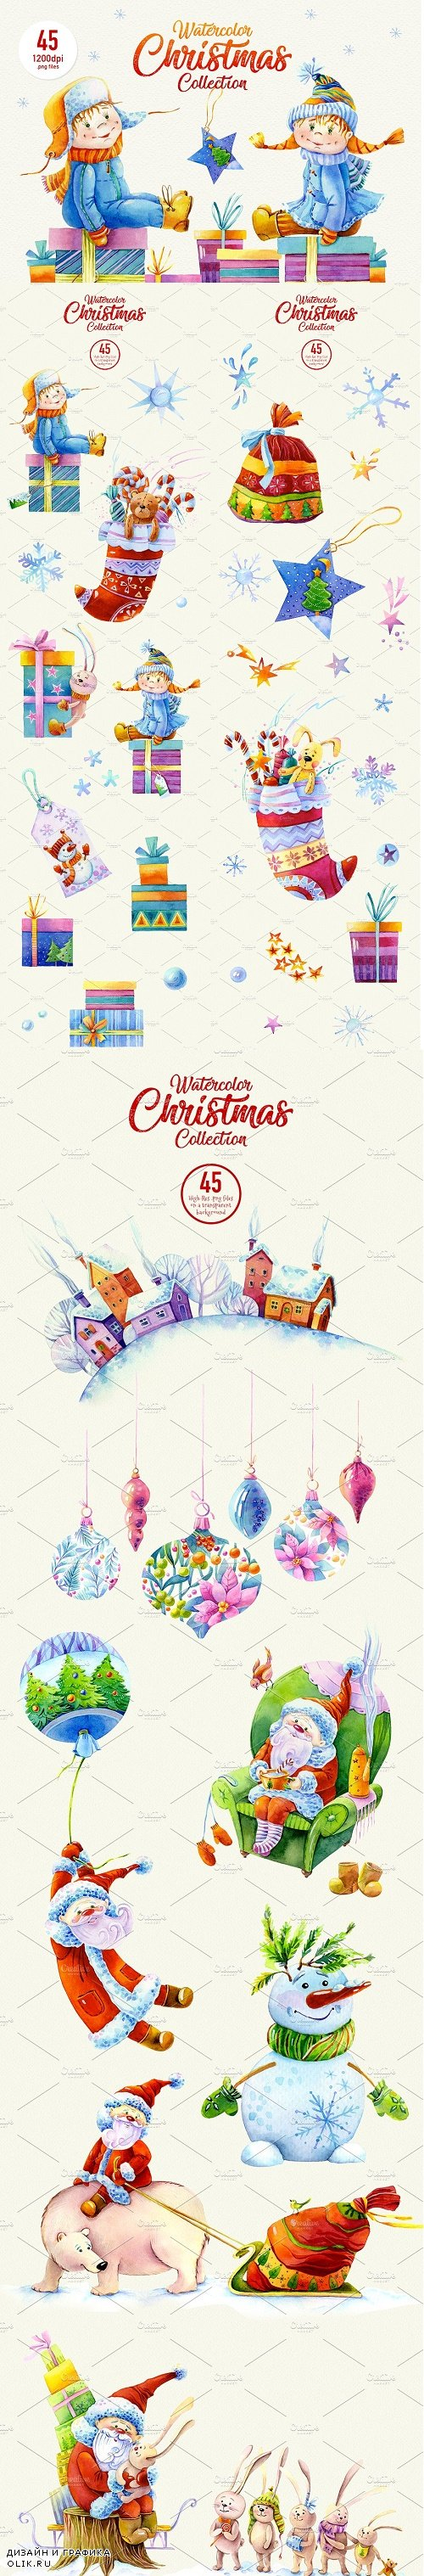 Christmas Watercolor Clipart 1200dpi - 4376285